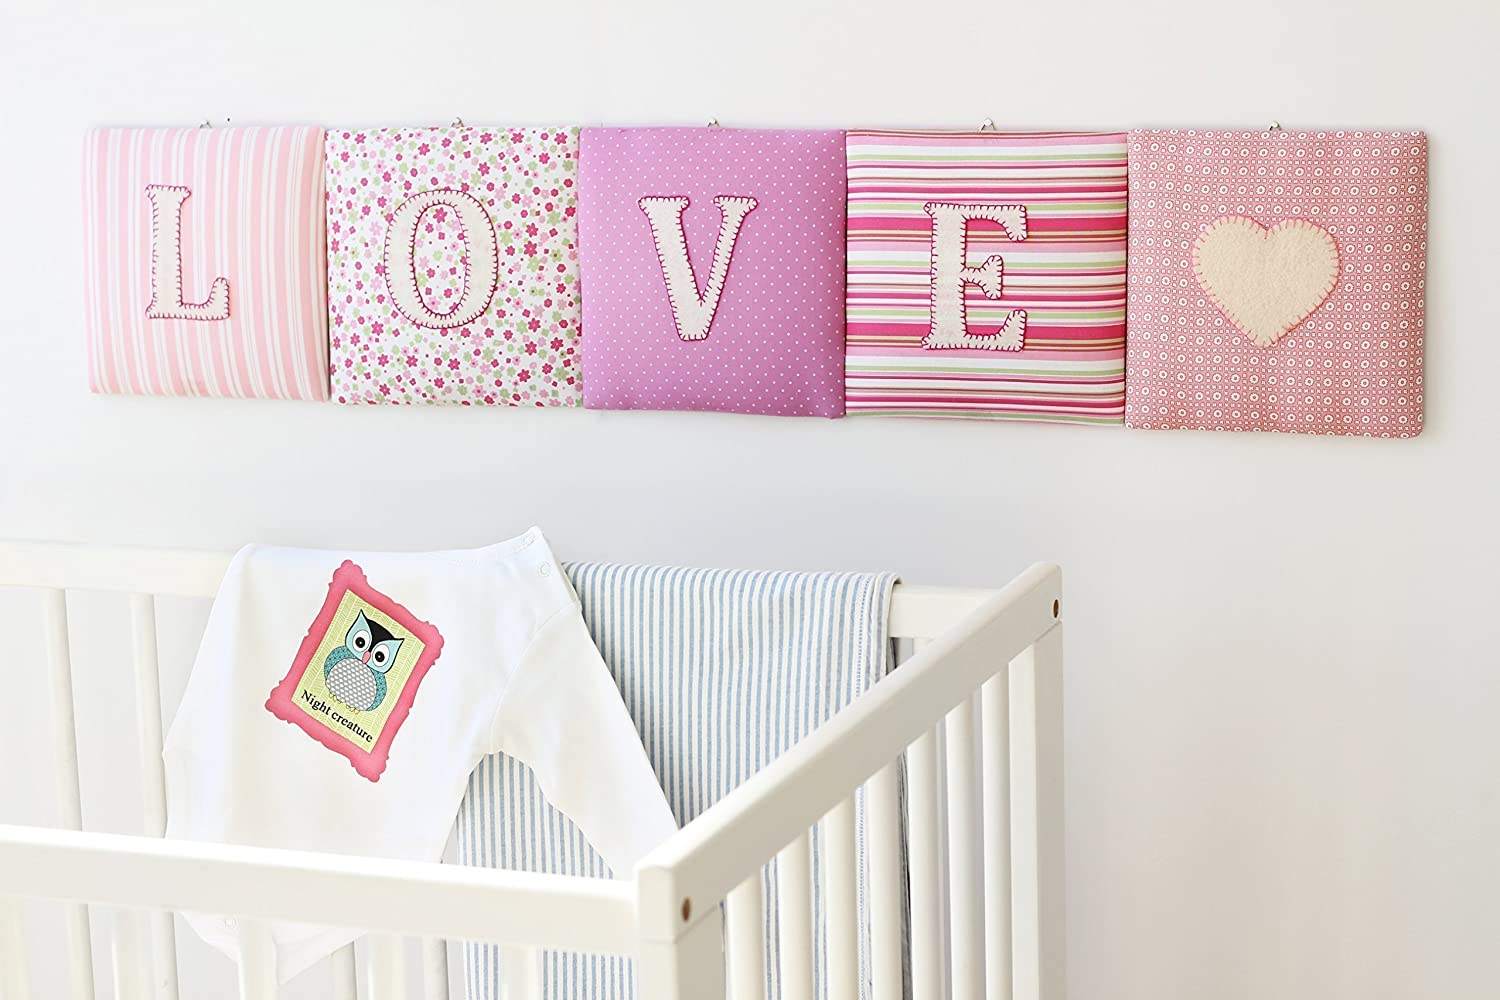 PERSONALIZED NAME BANNER-WALL CUSHION Name sign,Hanging wall letters,Nursery decor,Baby shower